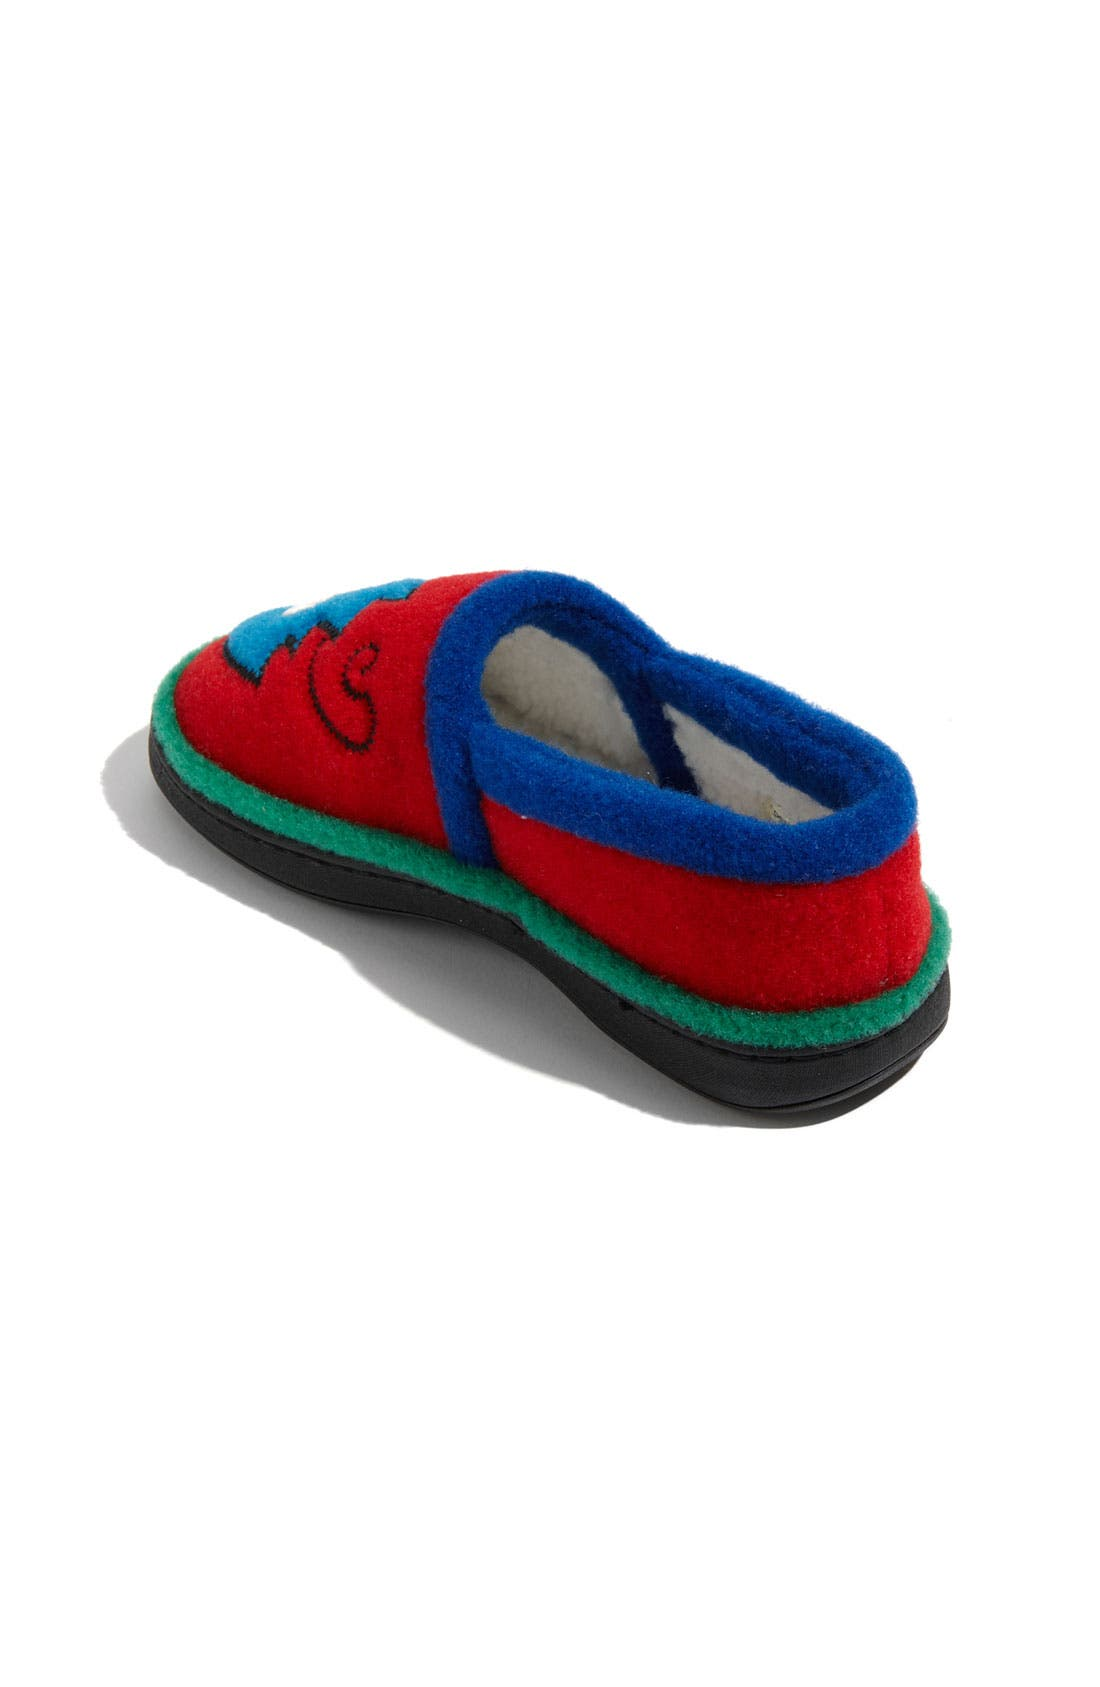 Alternate Image 2  - Acorn 'Monster Moc' Slipper (Toddler, Little Kid & Big Kid)